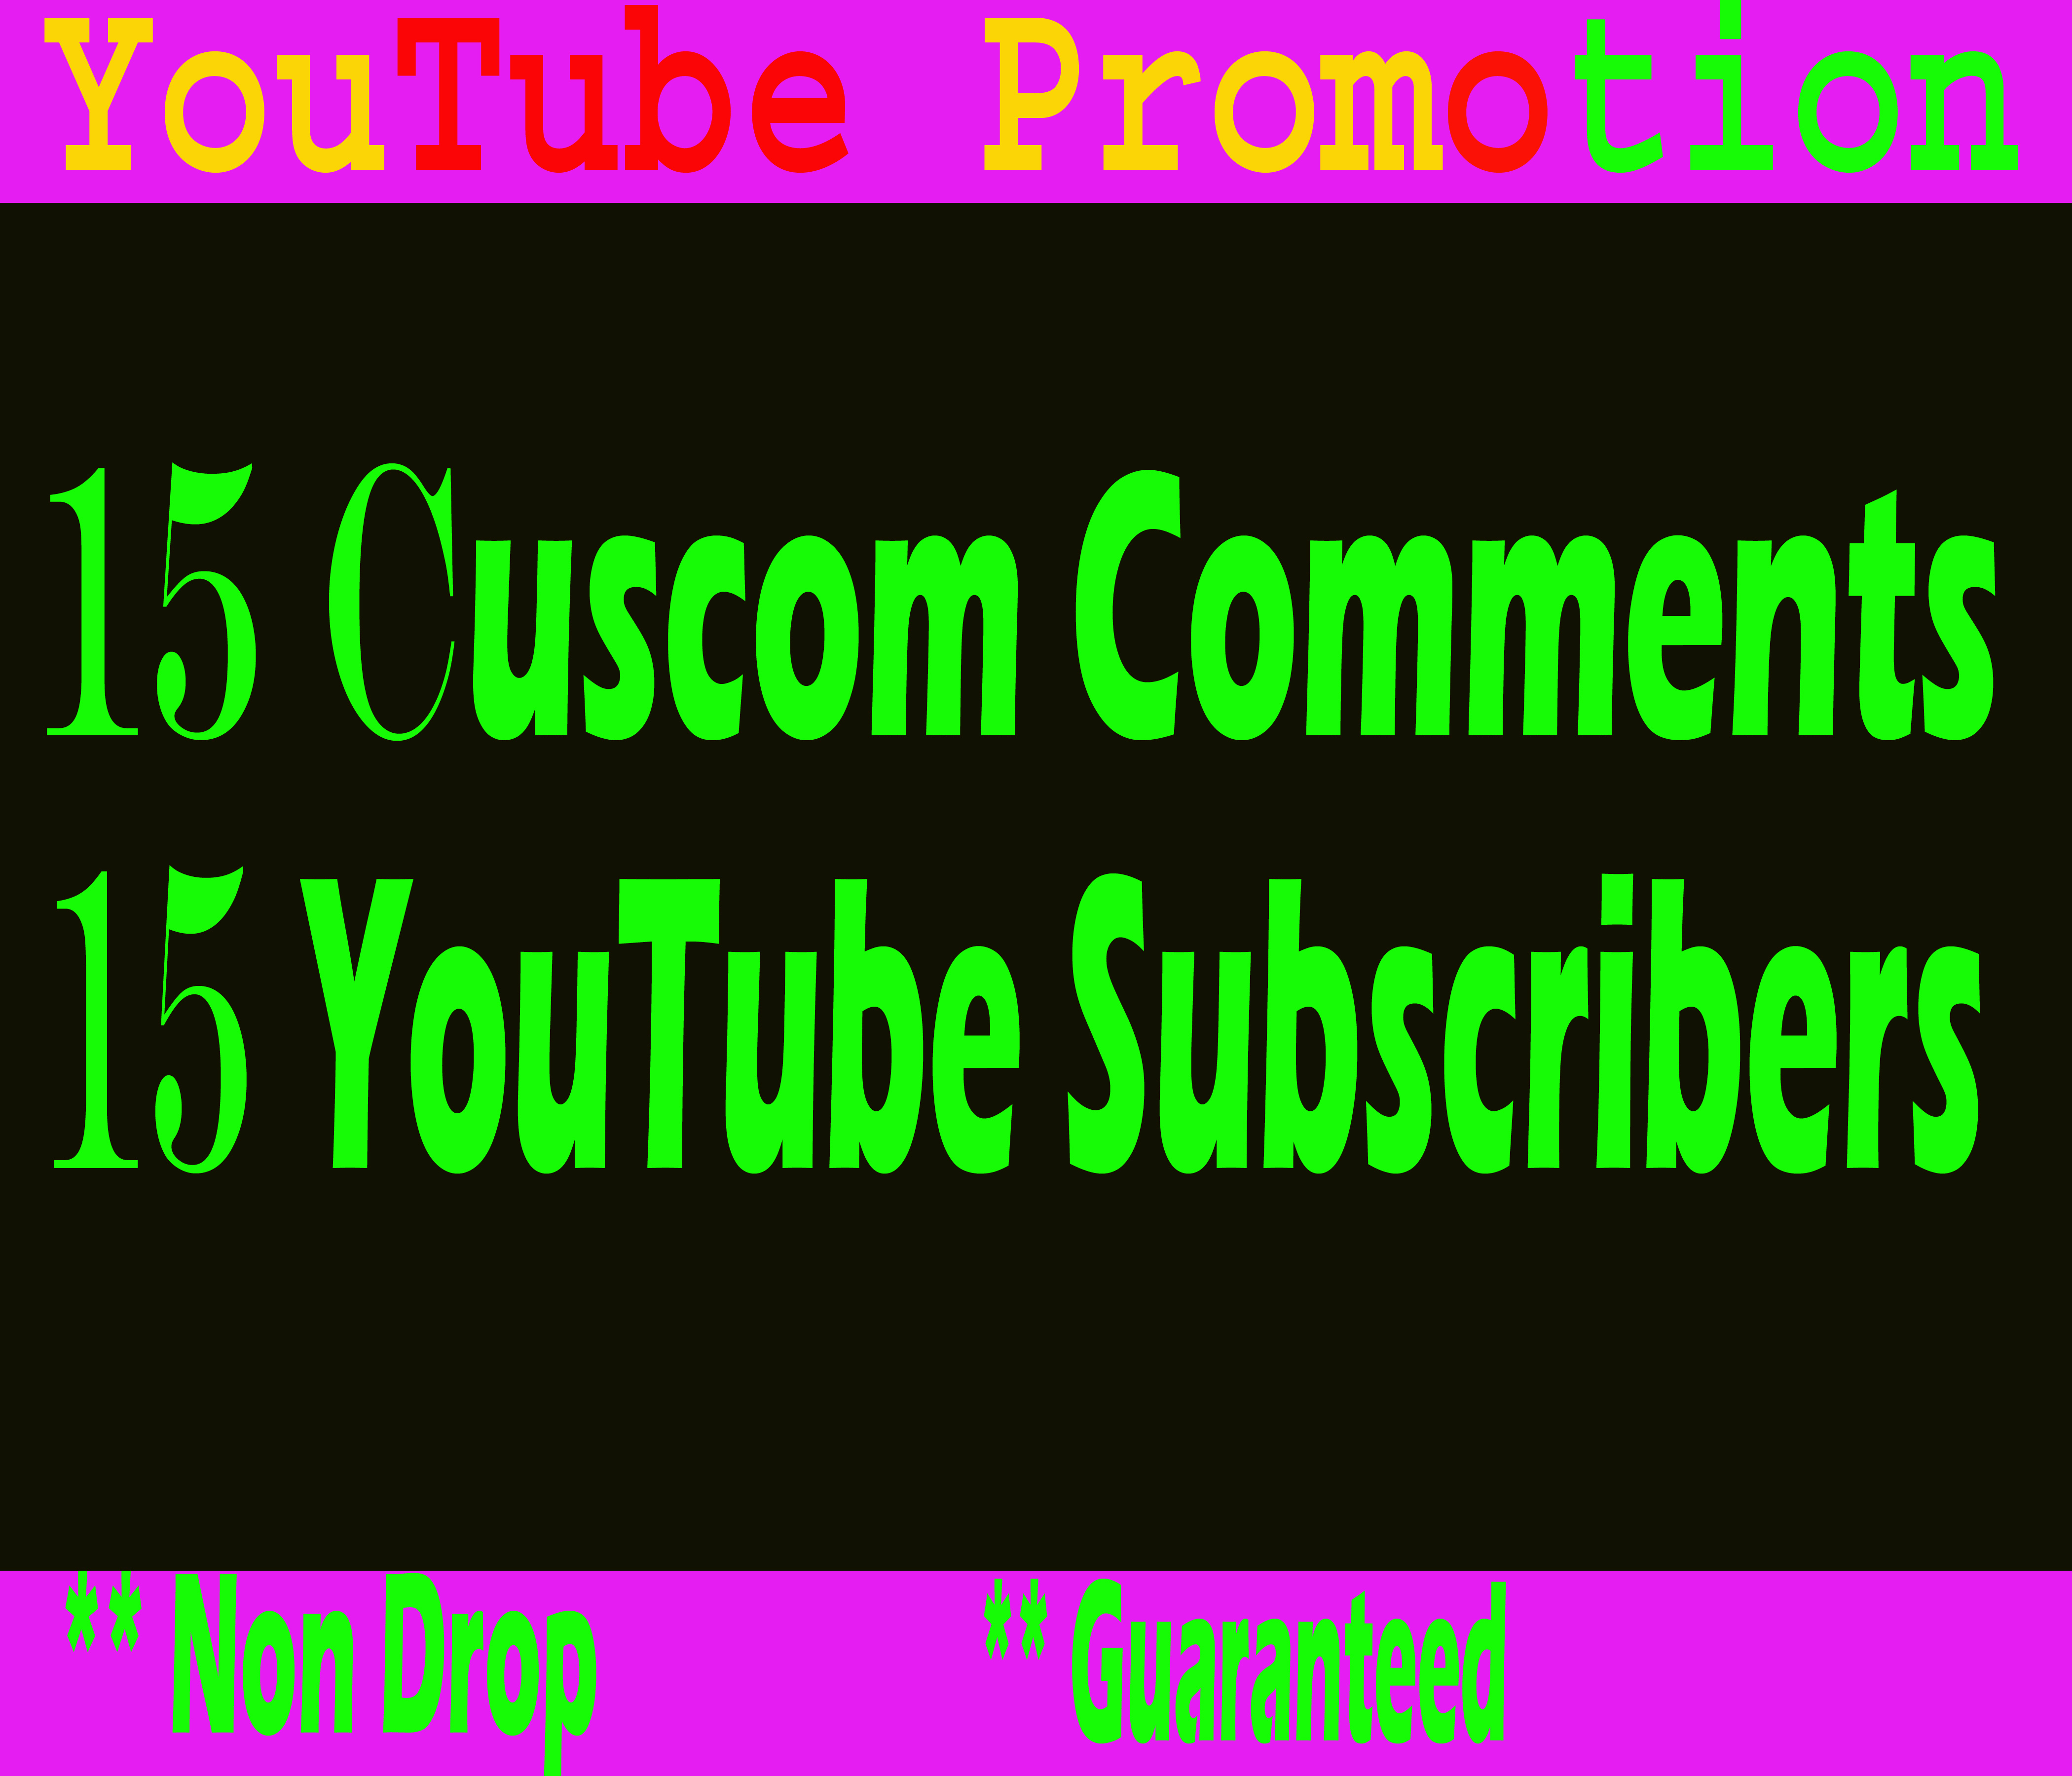 Guaranteed 15 YouTube Custom comments and 15 Subscribers